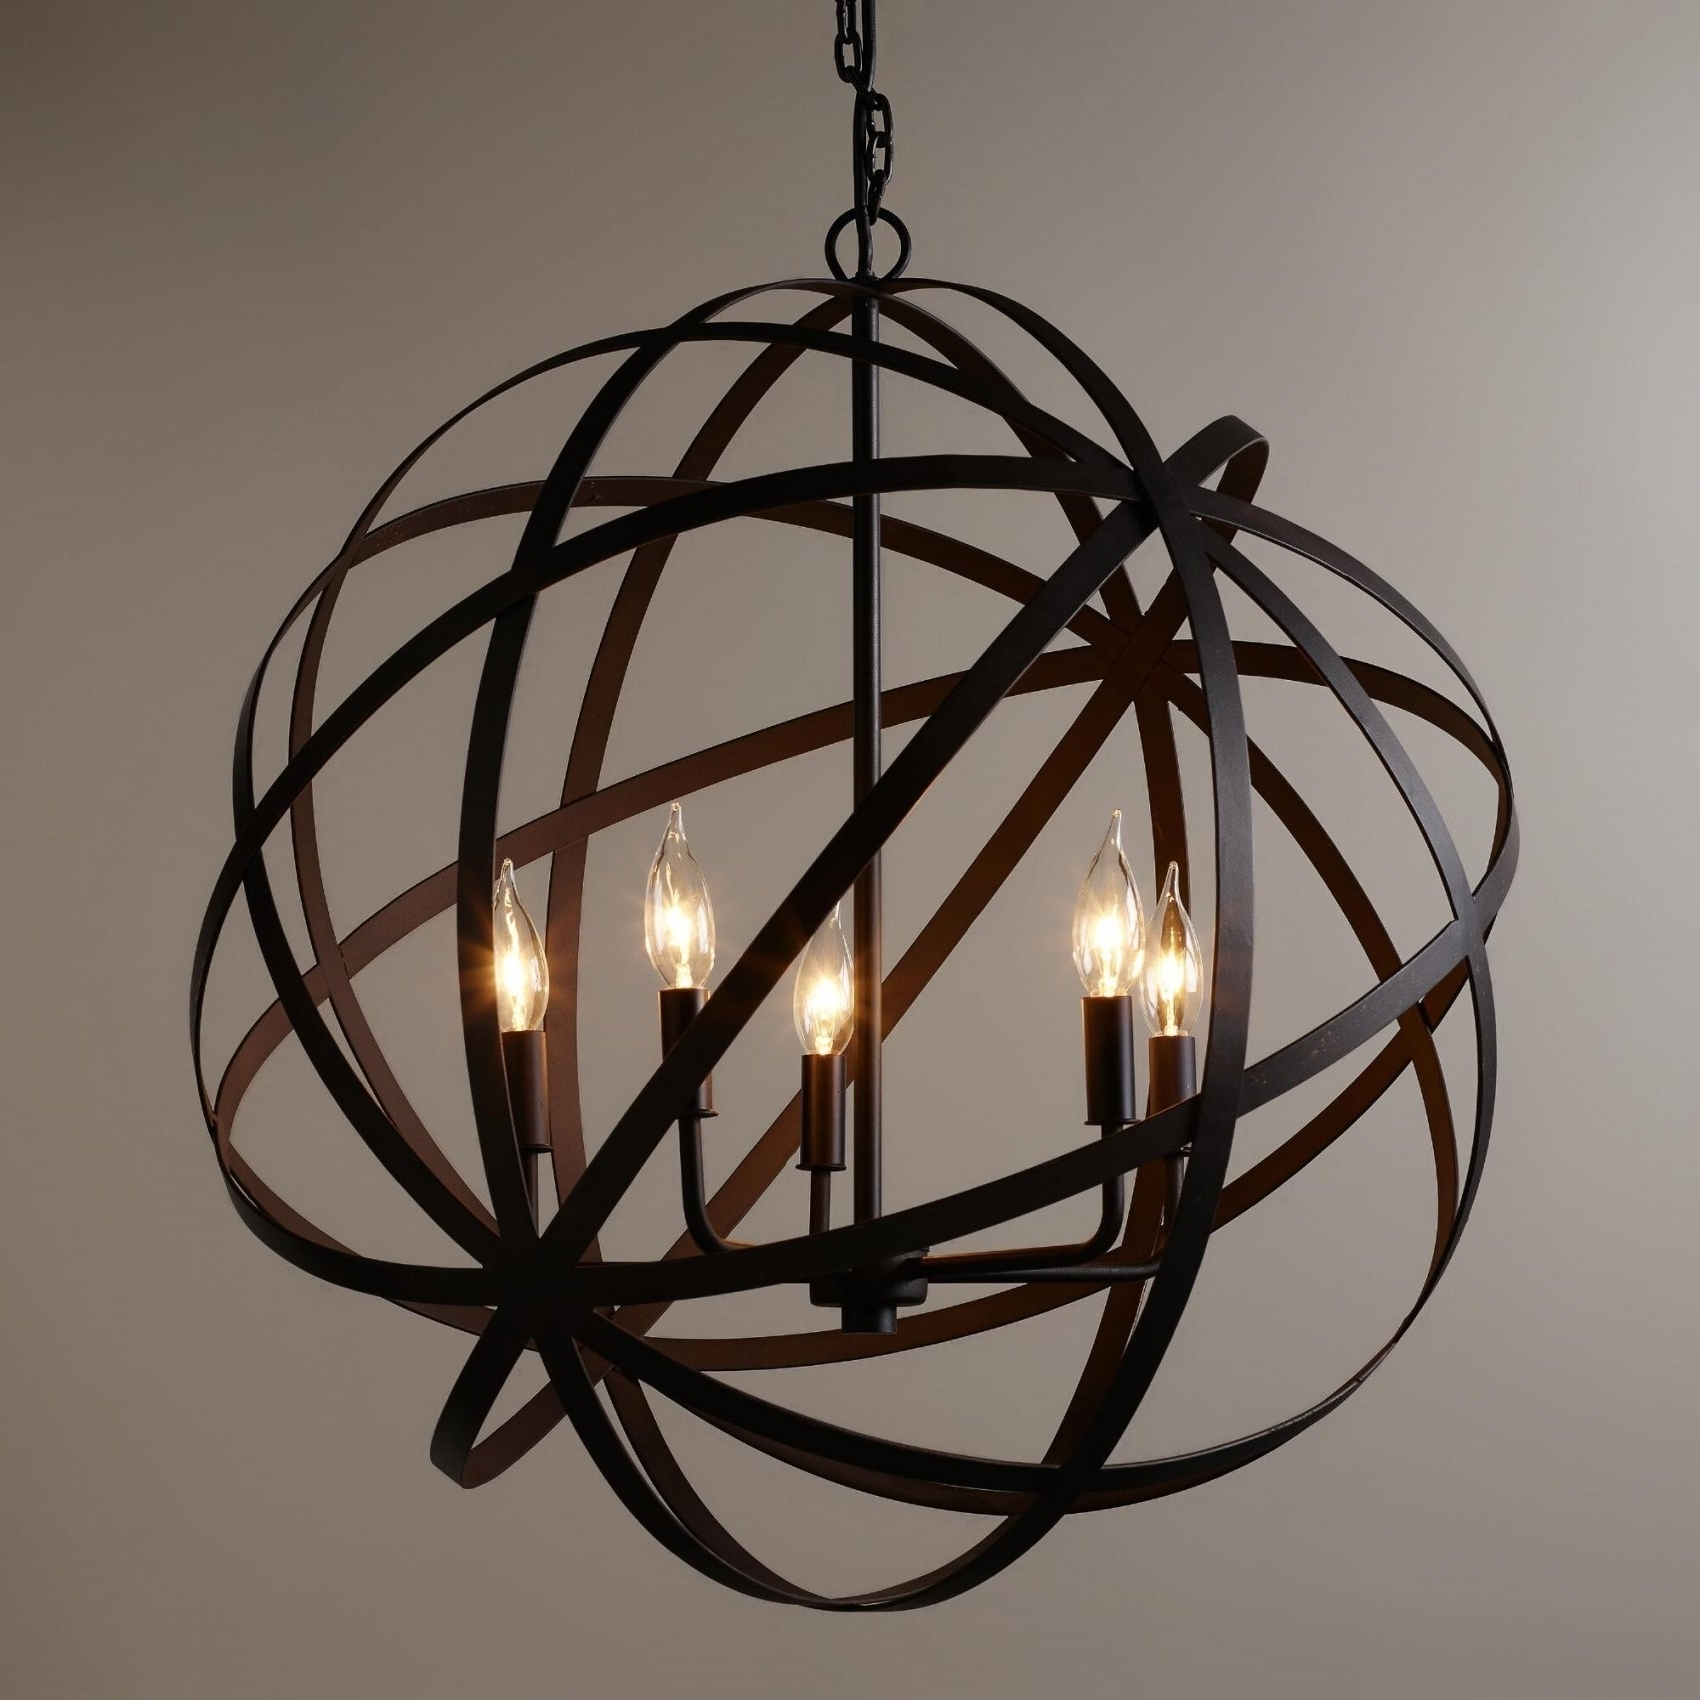 Rustic Large Chandeliers (View 7 of 15)